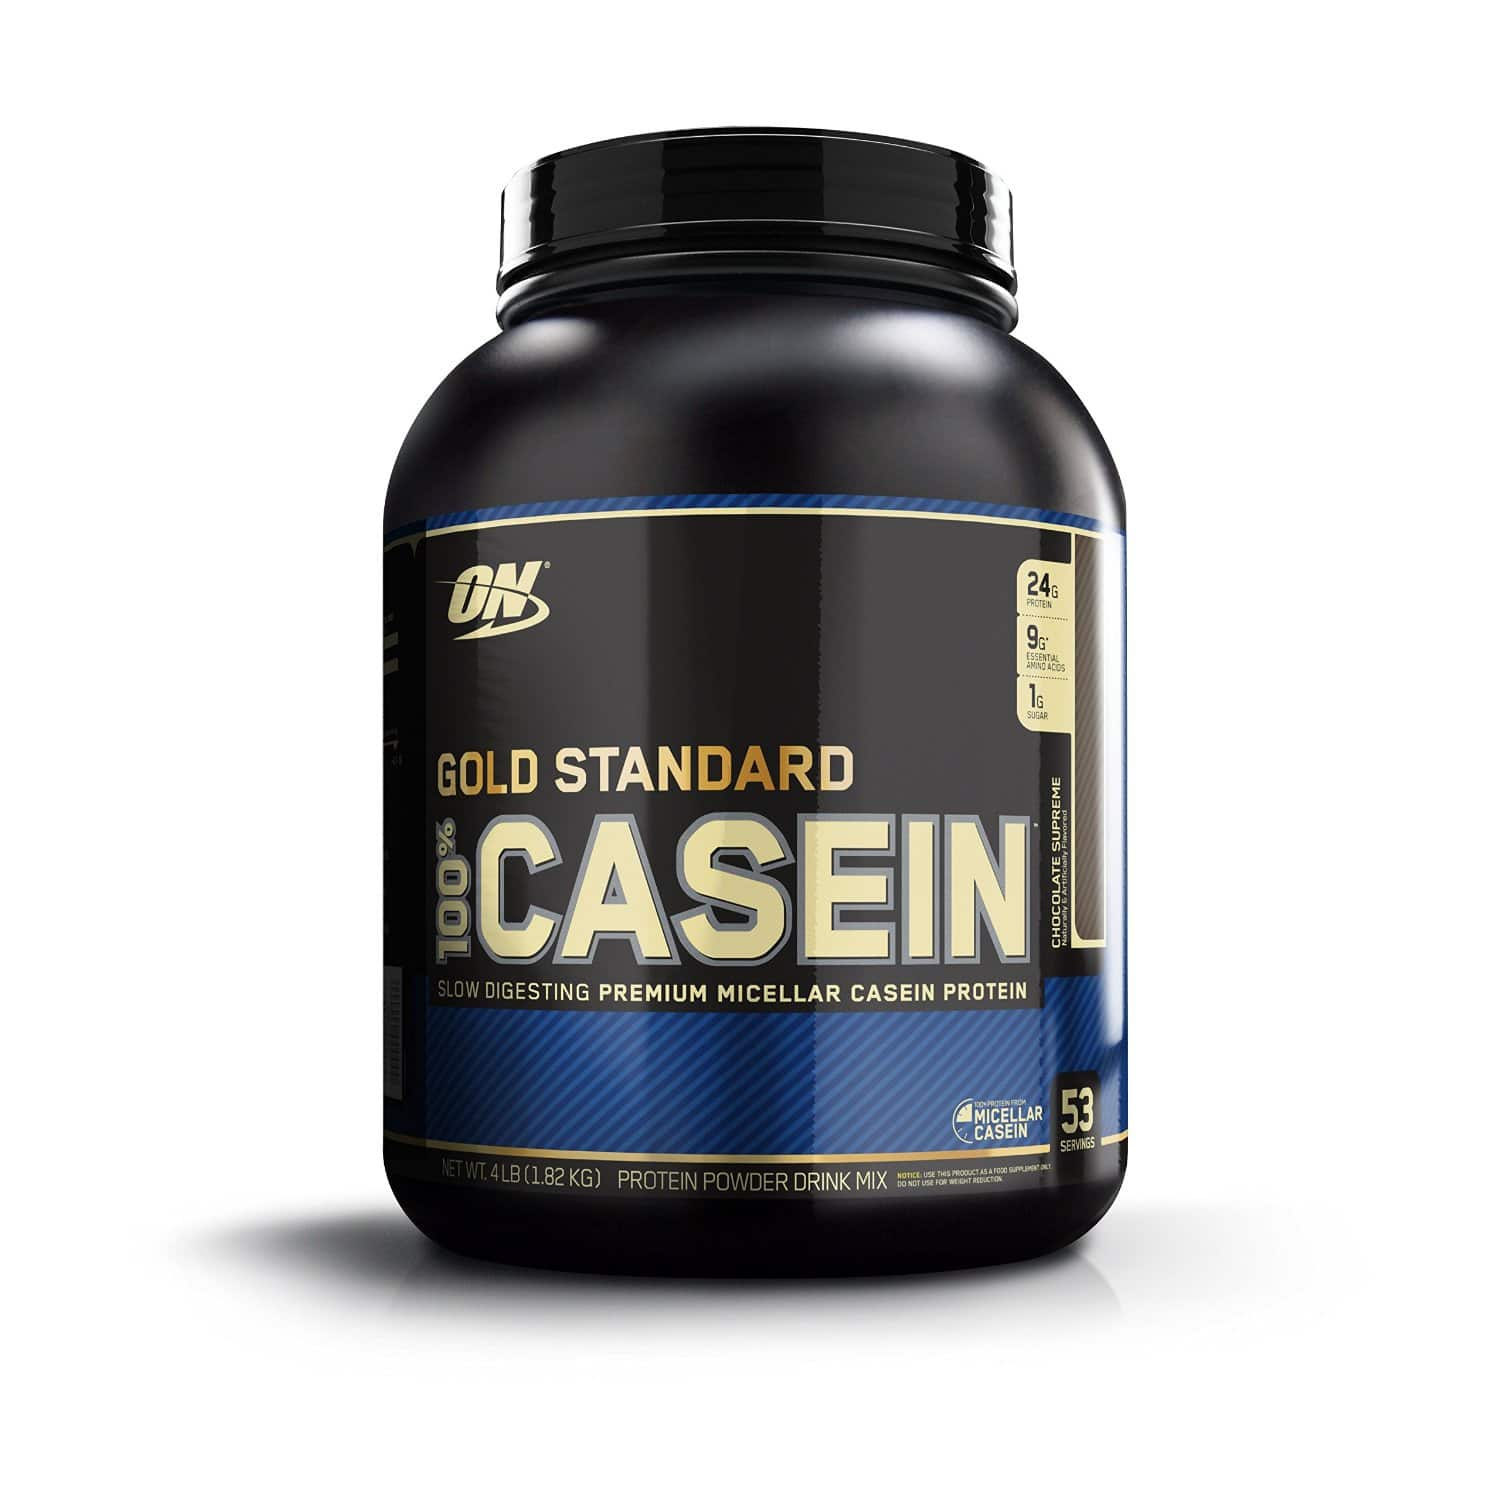 Optimum Nutrition 100% Casein Protein, Chocolate Supreme & other flavours, 4 Pounds 25% off, Comes to $32.37 with 5+ S&S Items or $42.60